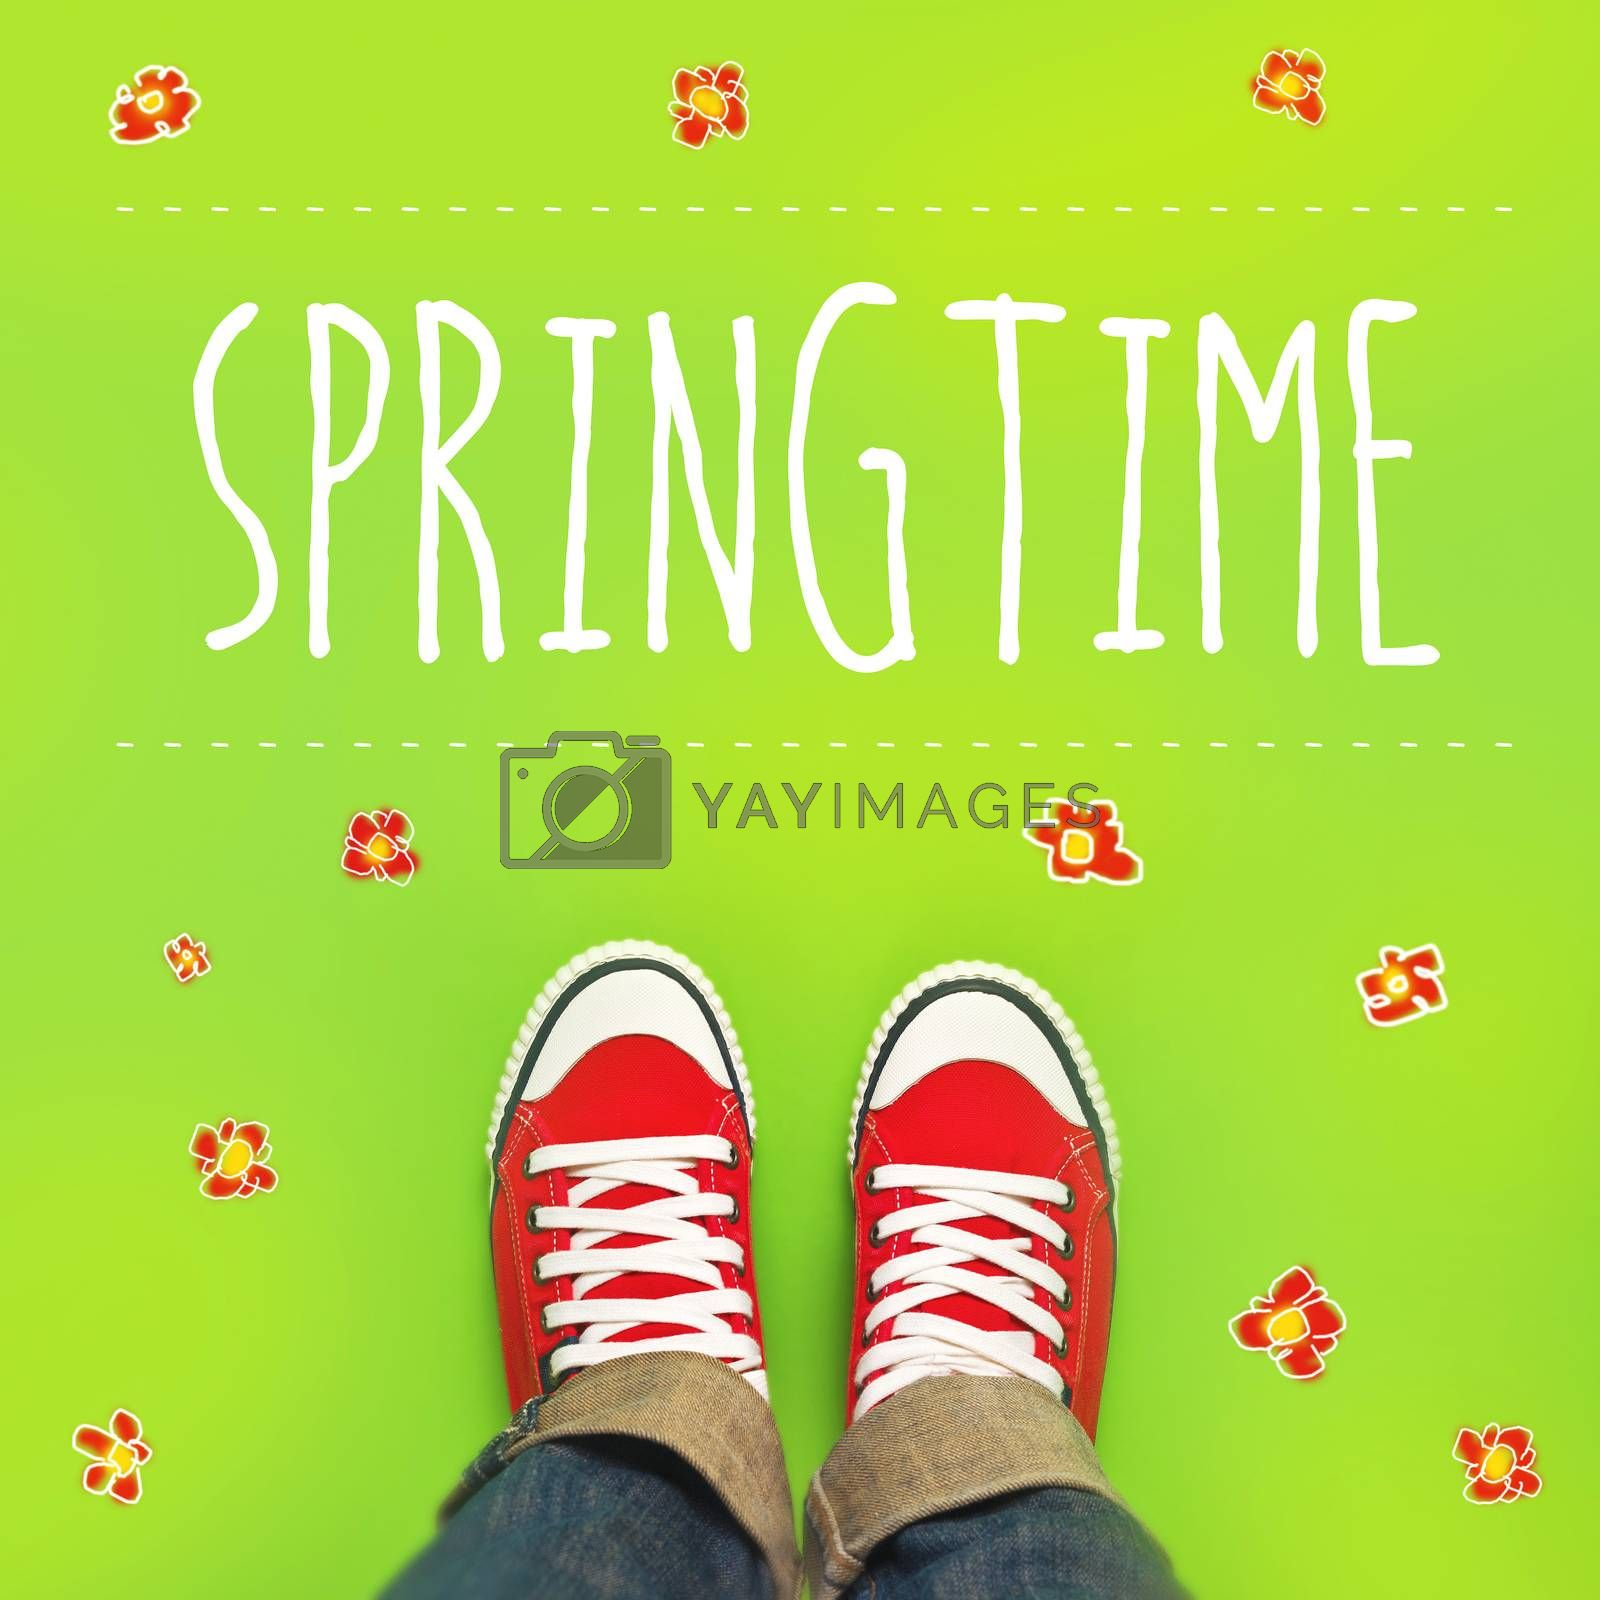 Springtime Concept, Woman with Red Sneakers Standing on Green Spring Background with drawn flowers.